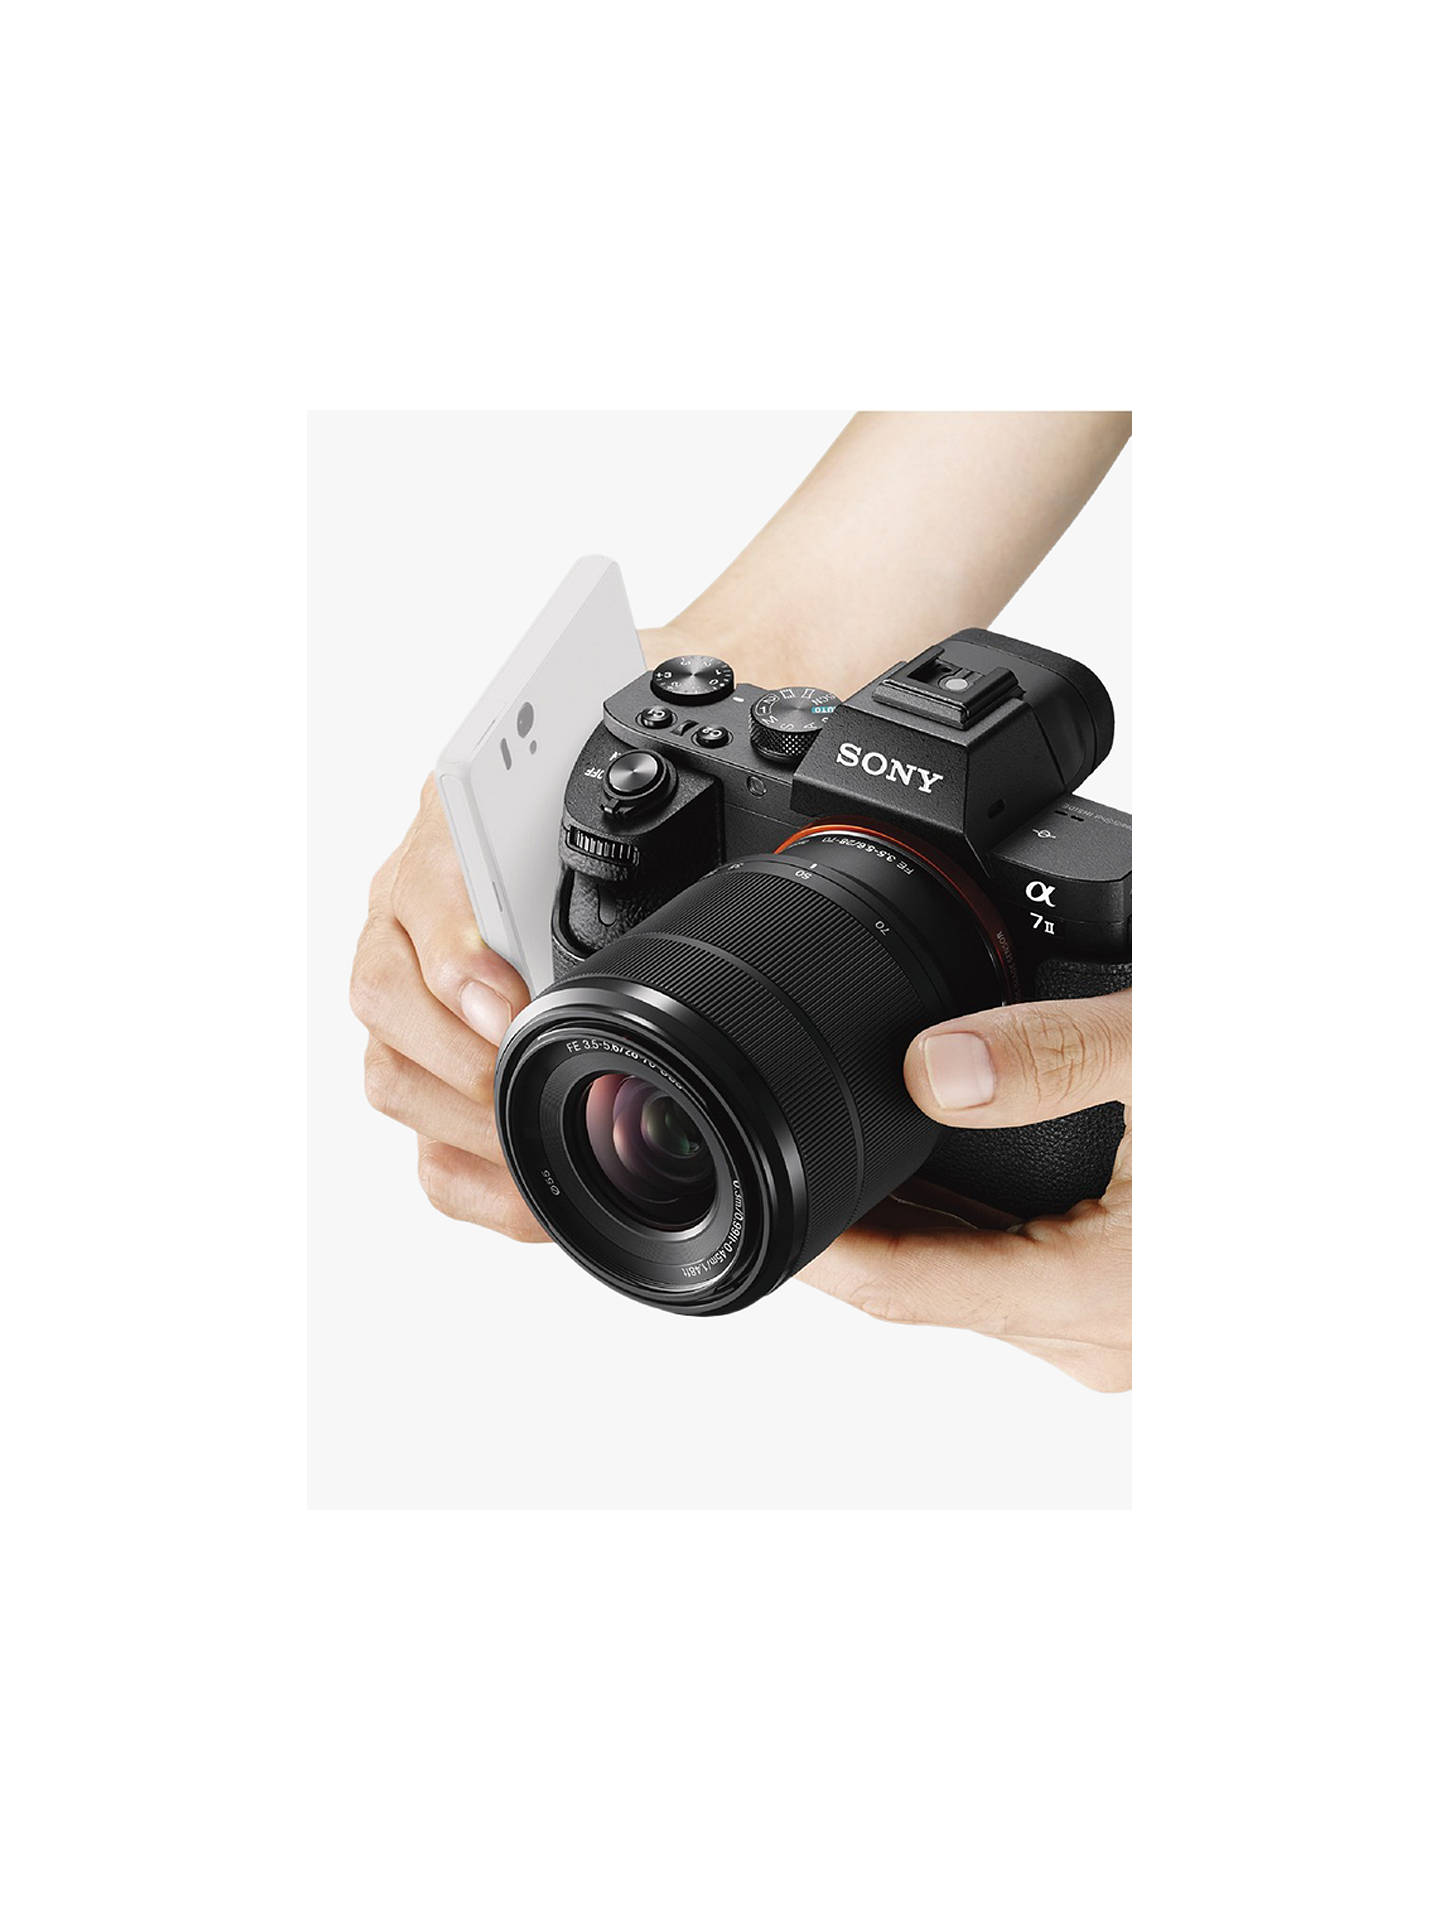 "BuySony a7 II (Alpha ILCE-7M2) Compact System Camera With HD 1080p, 24.3MP, Wi-Fi, NFC, OLED EVF, 5-Axis Image Stabiliser & 3"" LCD Screen, 28-70mm Lens Included Online at johnlewis.com"